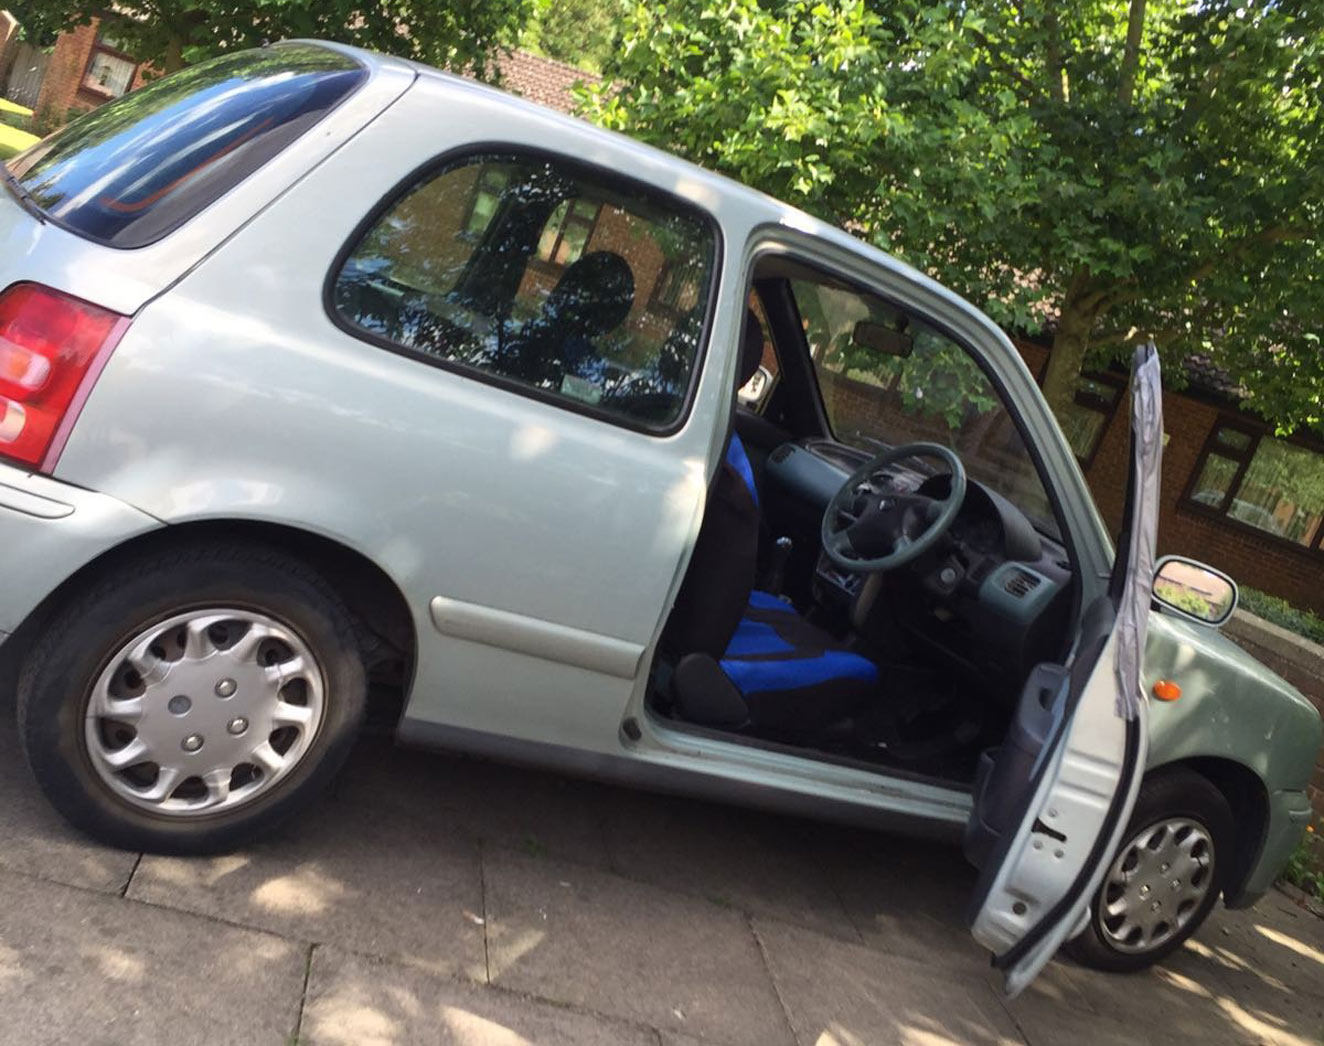 One owner left their car unlocked and unattended while they were in a house 15 minutes away.